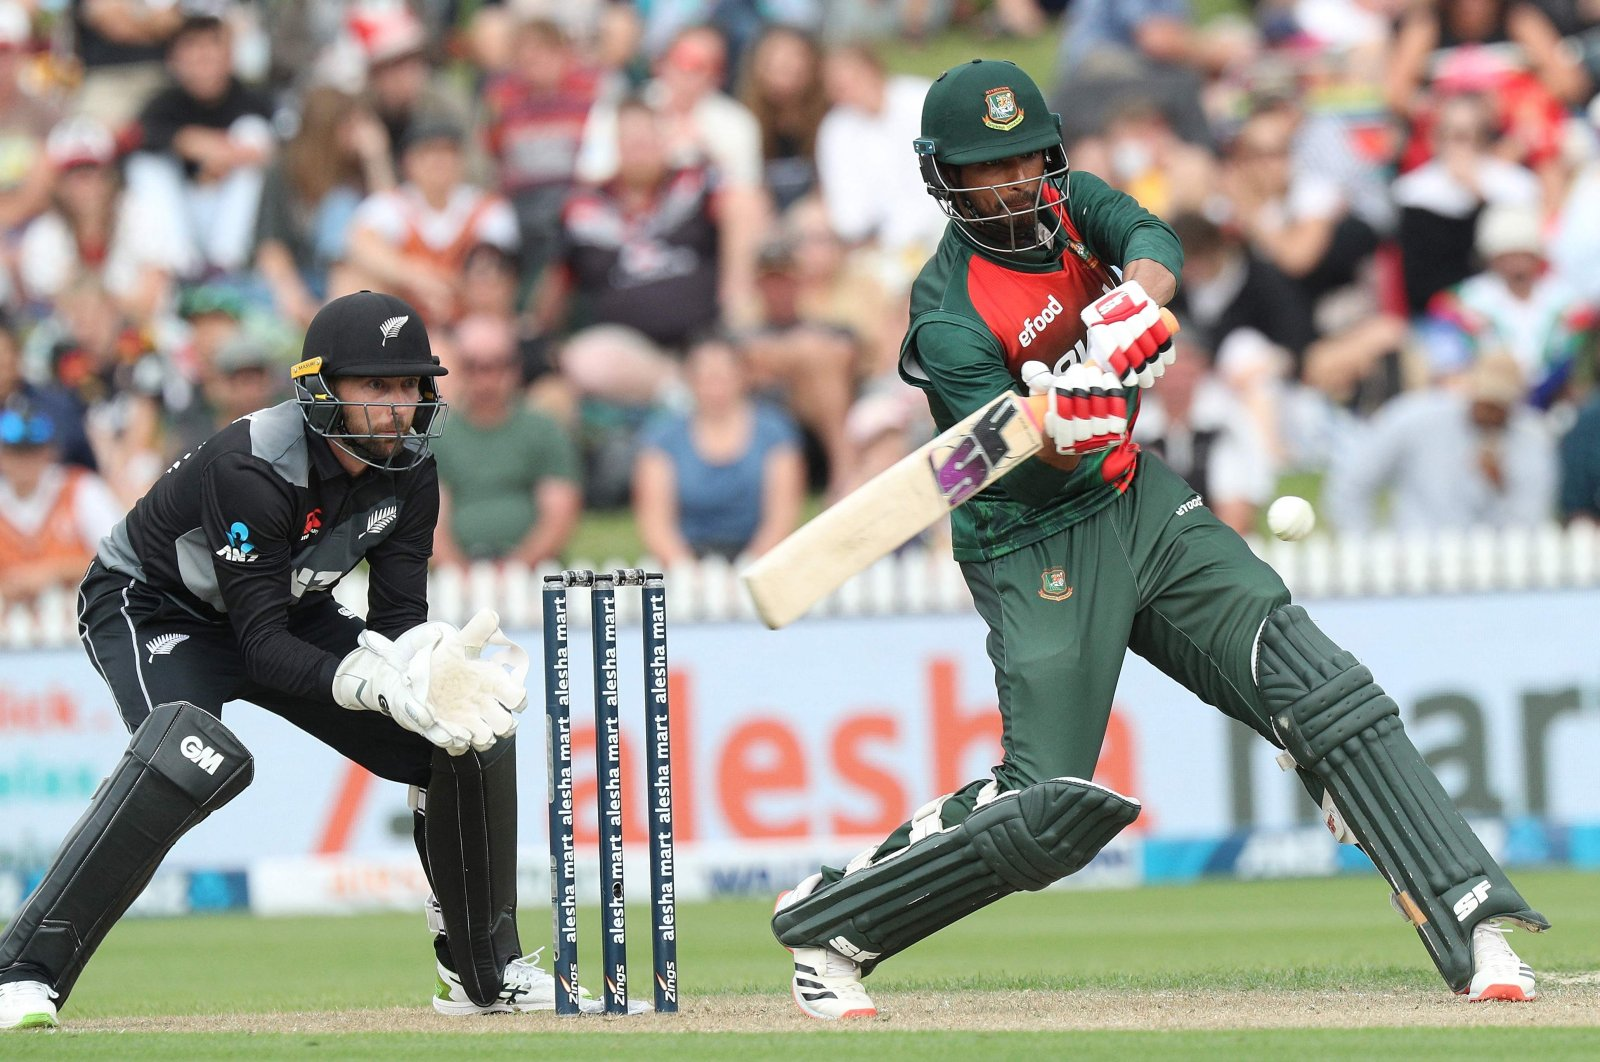 Bangladesh's Mahmudullah plays a shot in front of New Zealand's wicketkeeper Devon Conway during a T20 cricket match at Seddon Park, Hamilton, New Zealand, March 28, 2021. (AFP Photo)